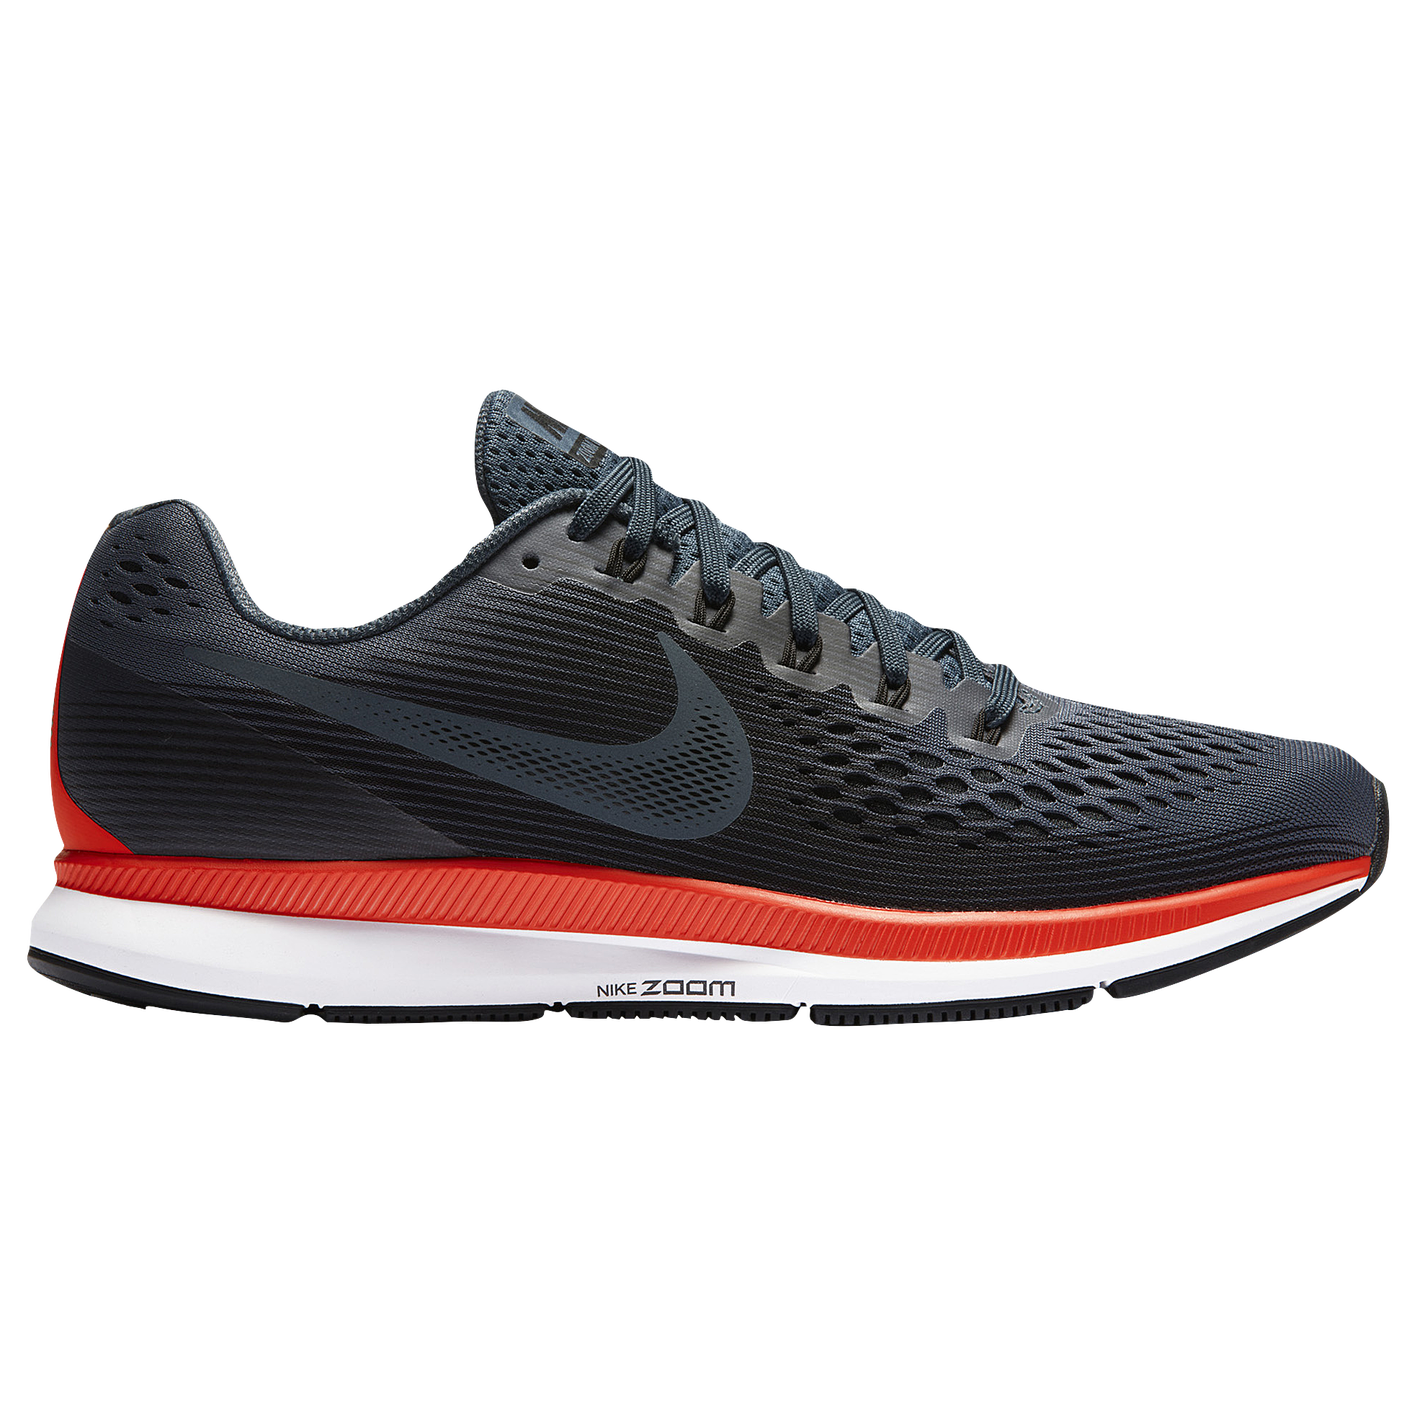 f573fdd03e54 Nike Air Zoom Pegasus 34 - Men s - Running - Shoes - Blue Fox Black ...